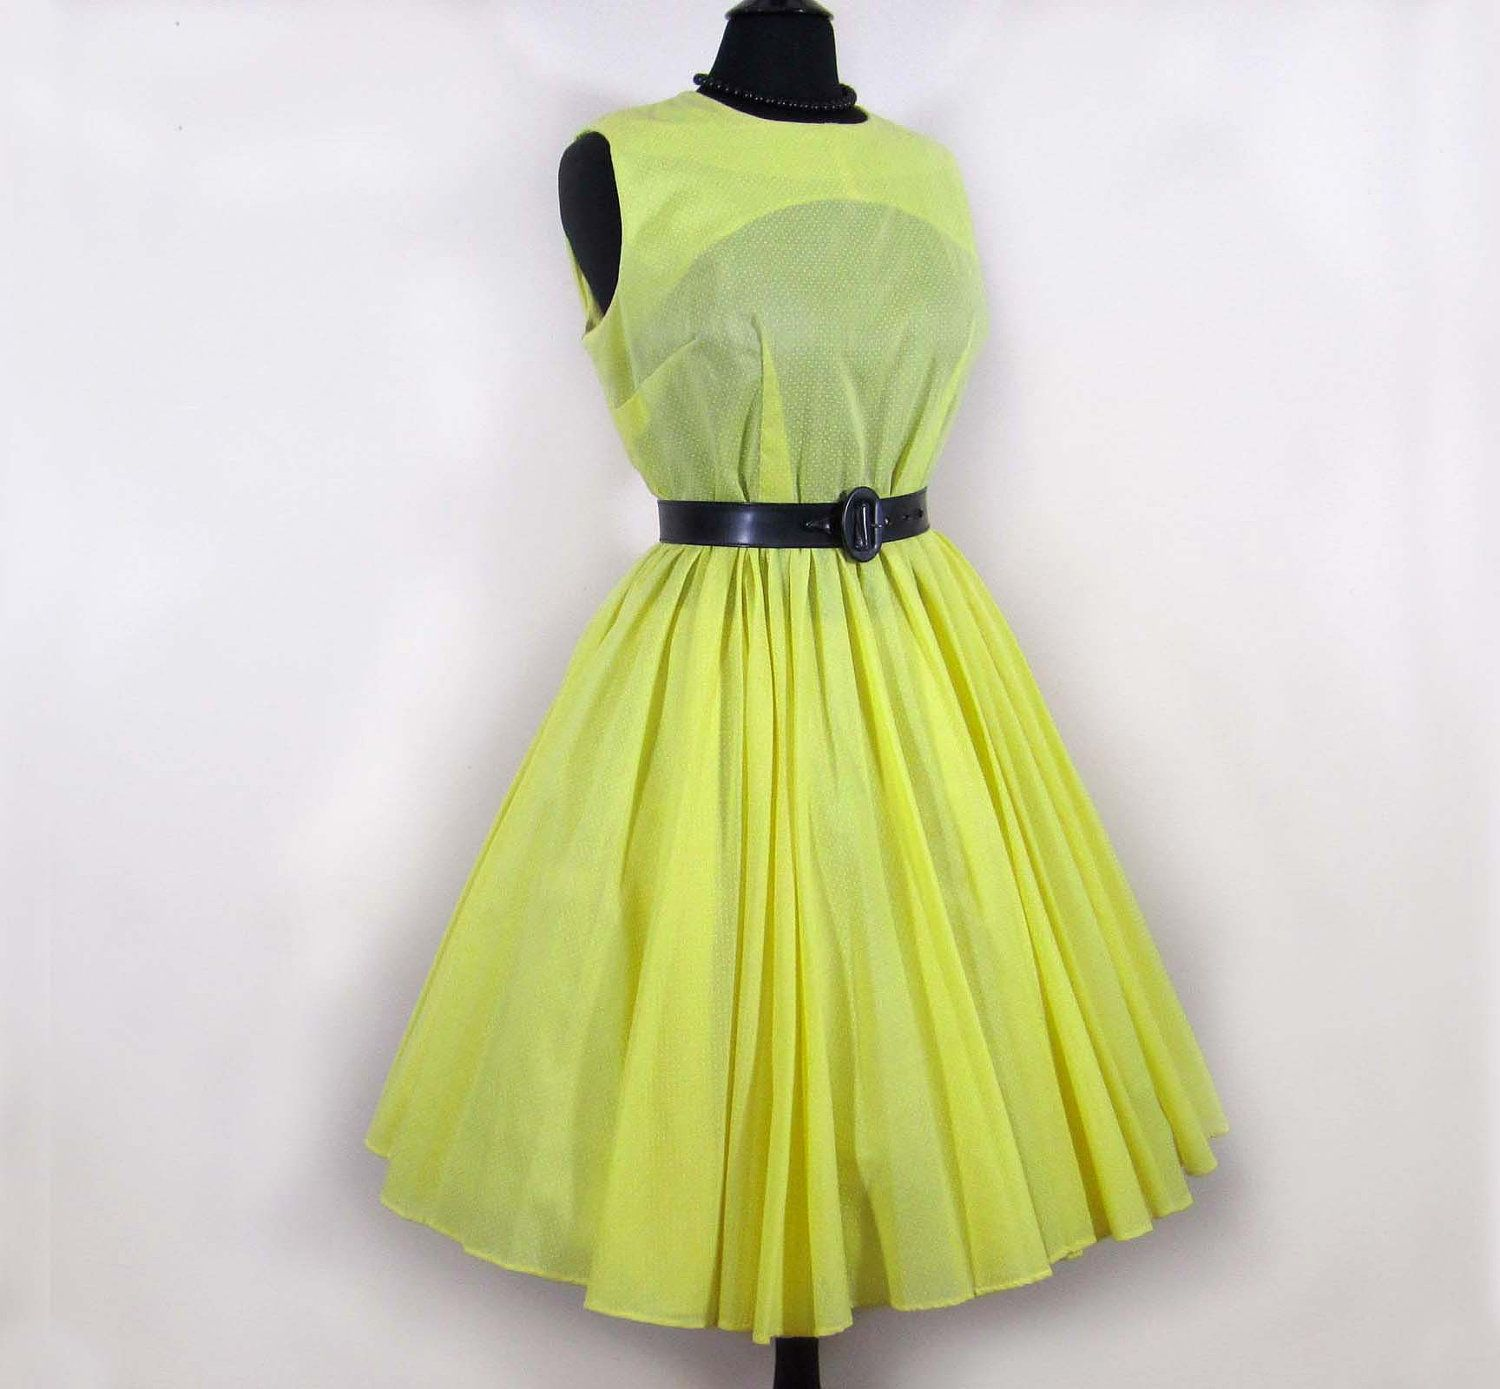 22f6d94deb2 Vintage 50s-60s full skirt Dress - Yellow dotted swiss